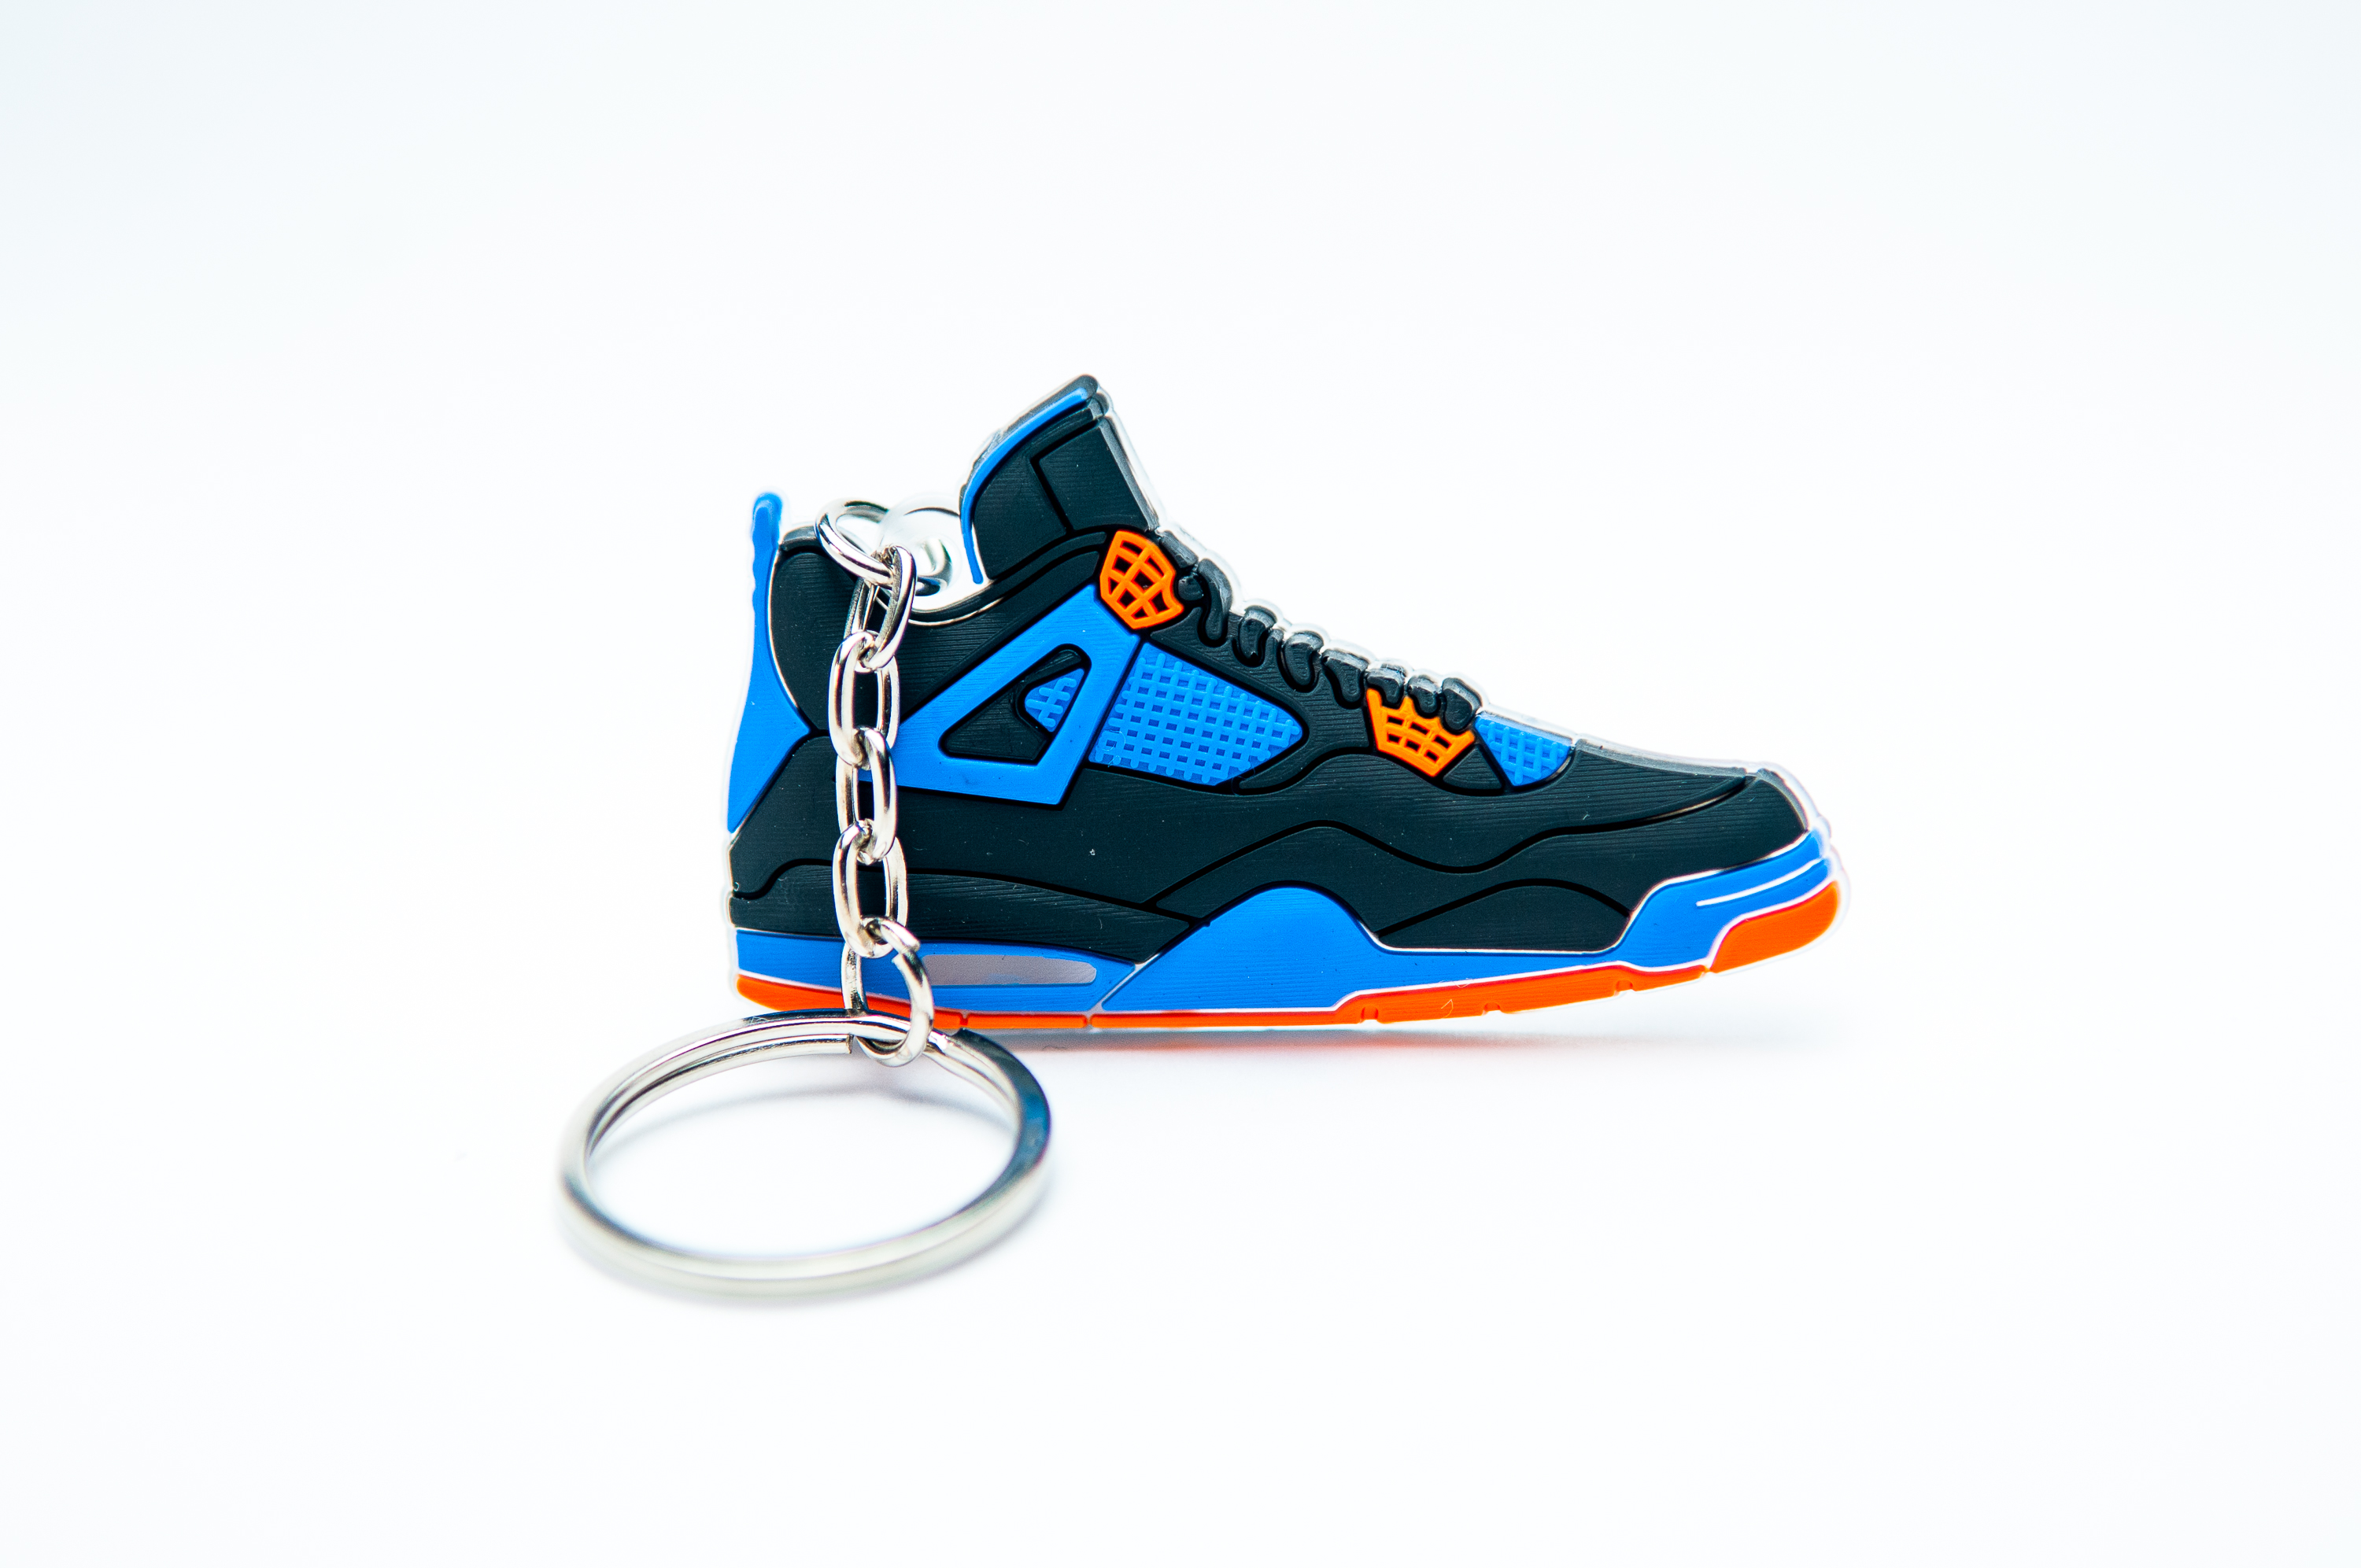 448b9568acc30b Nike Air Jordan 4 Retro Black Blue - Kool keyringsKool keyrings